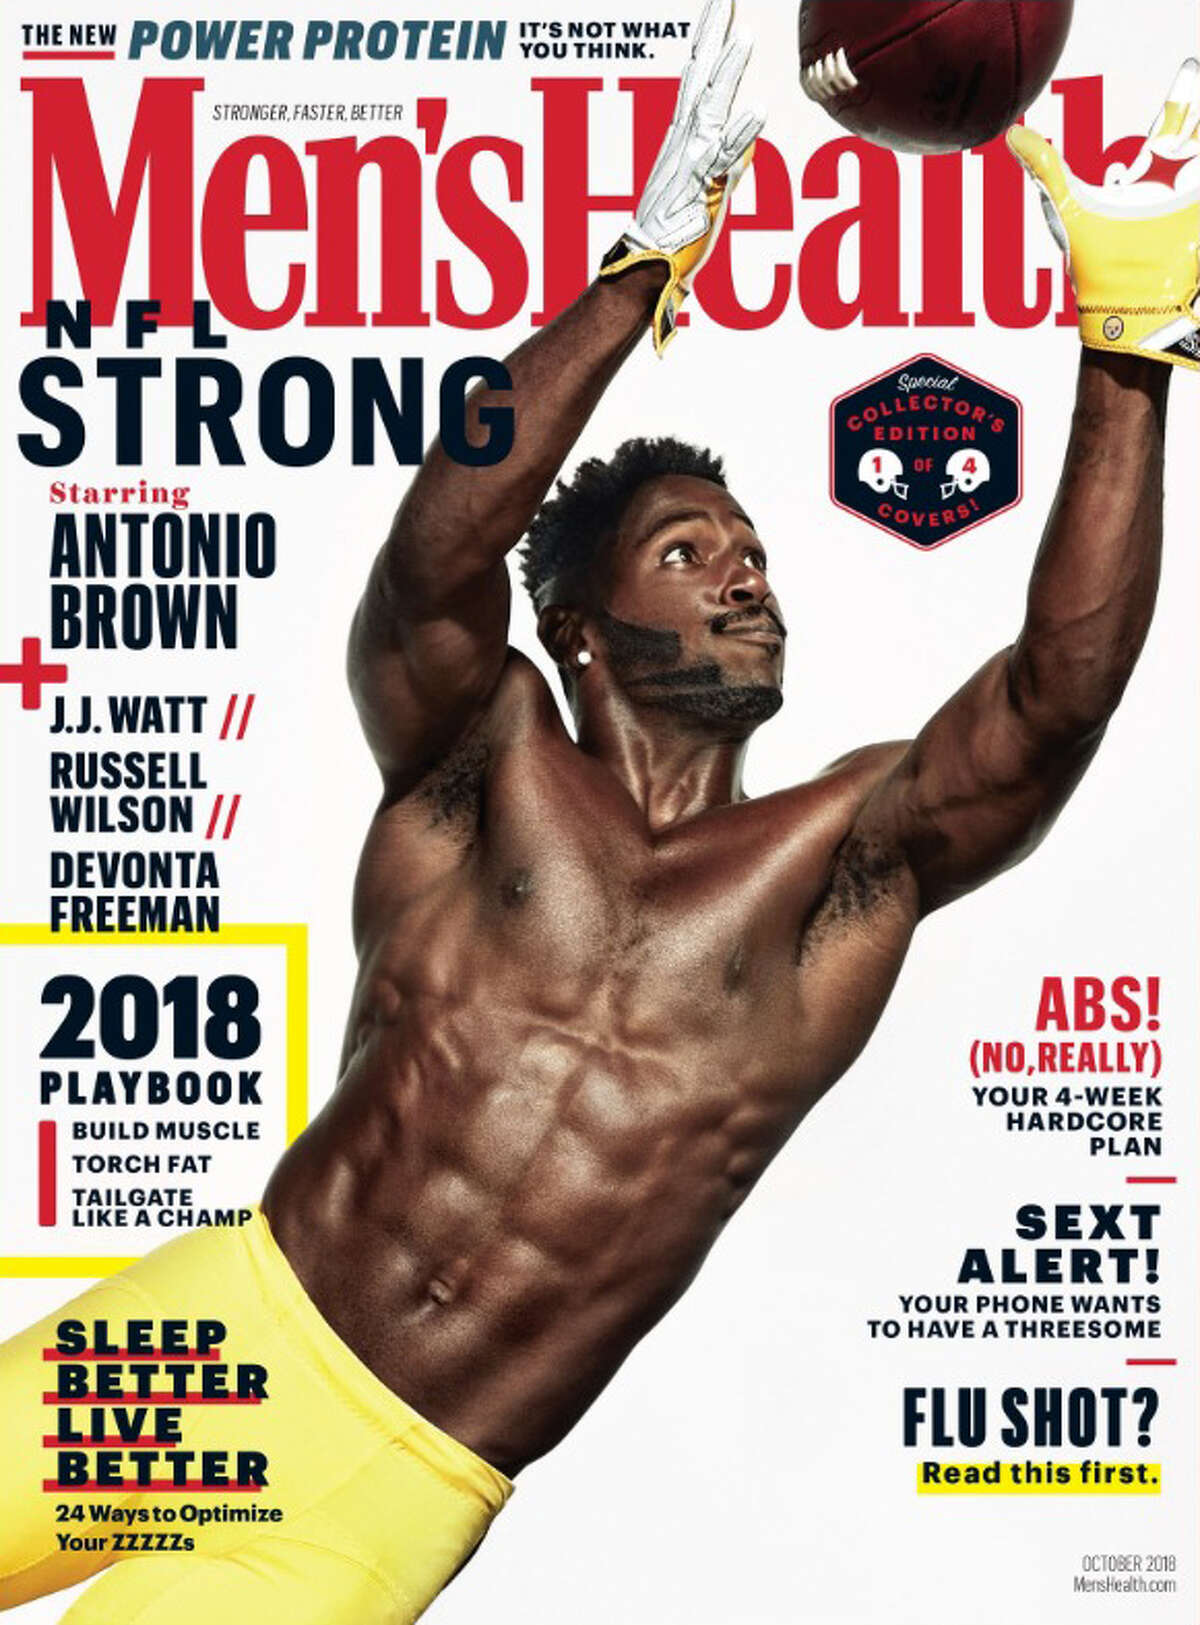 The Pittsburgh Steelers' Antonio Brown appears on the cover of the October 2018 Men's Health issue.